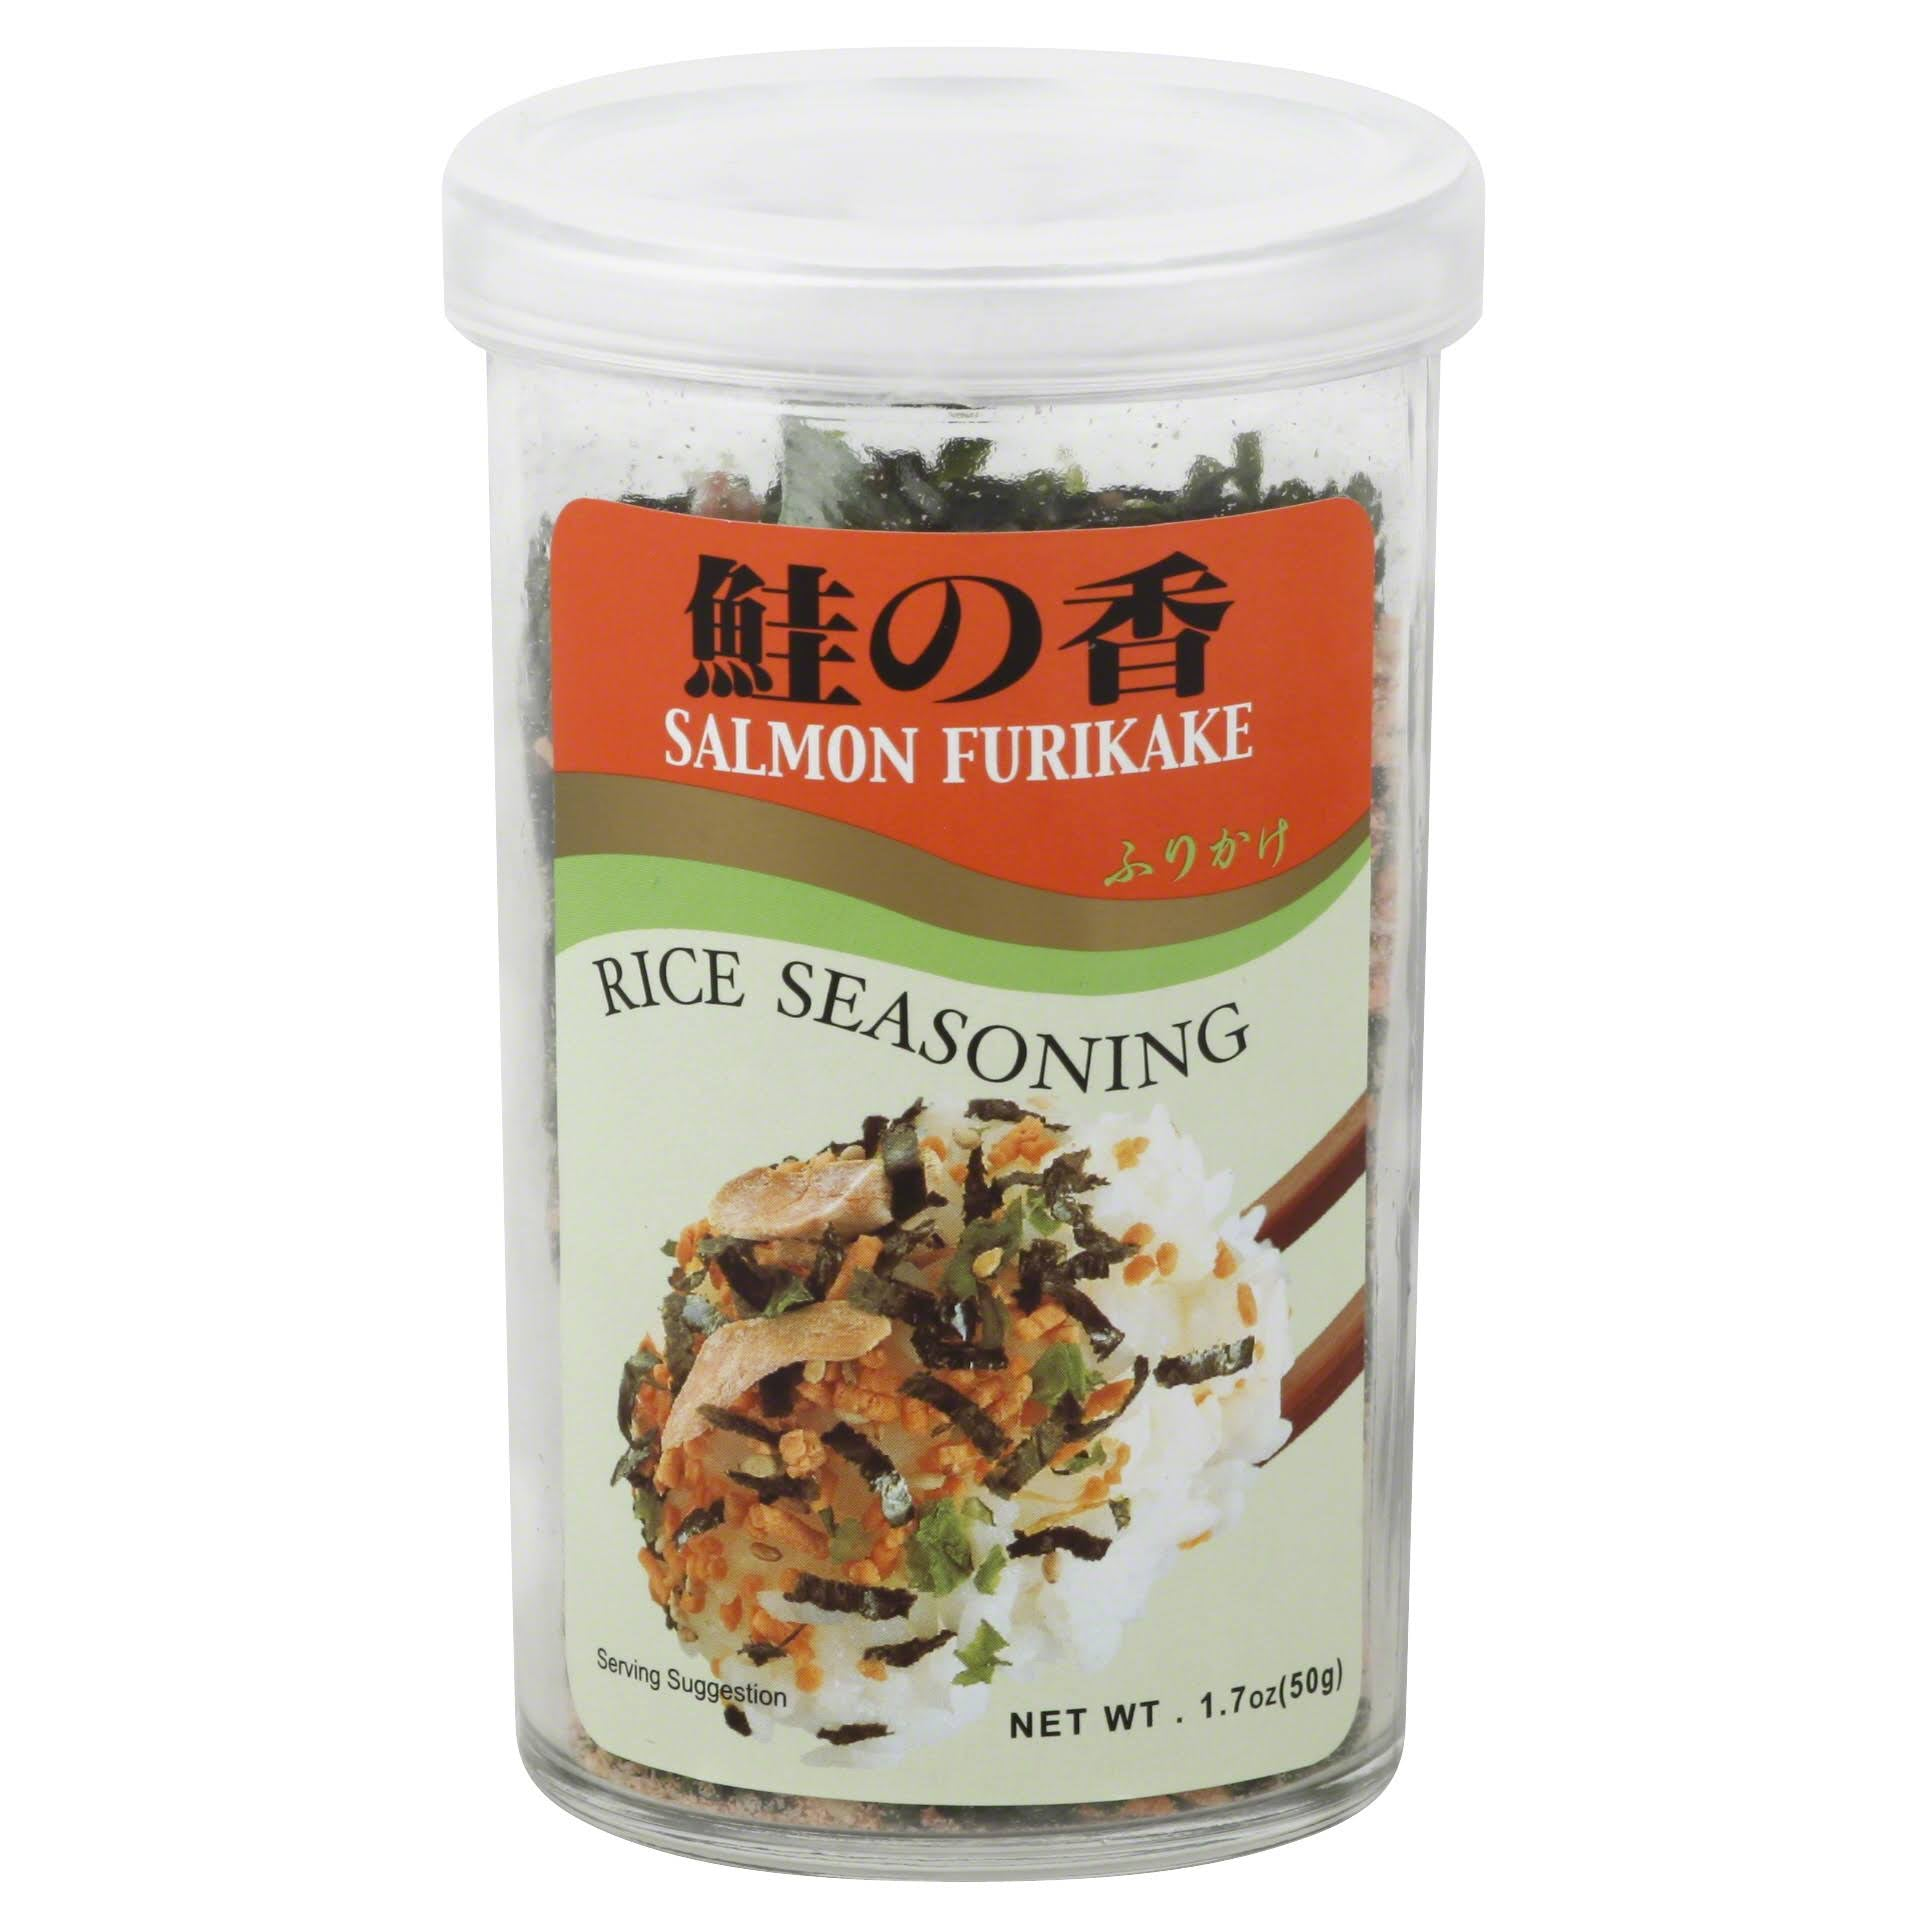 Ajishima Salmon Furikake Rice Seasoning 1.7oz